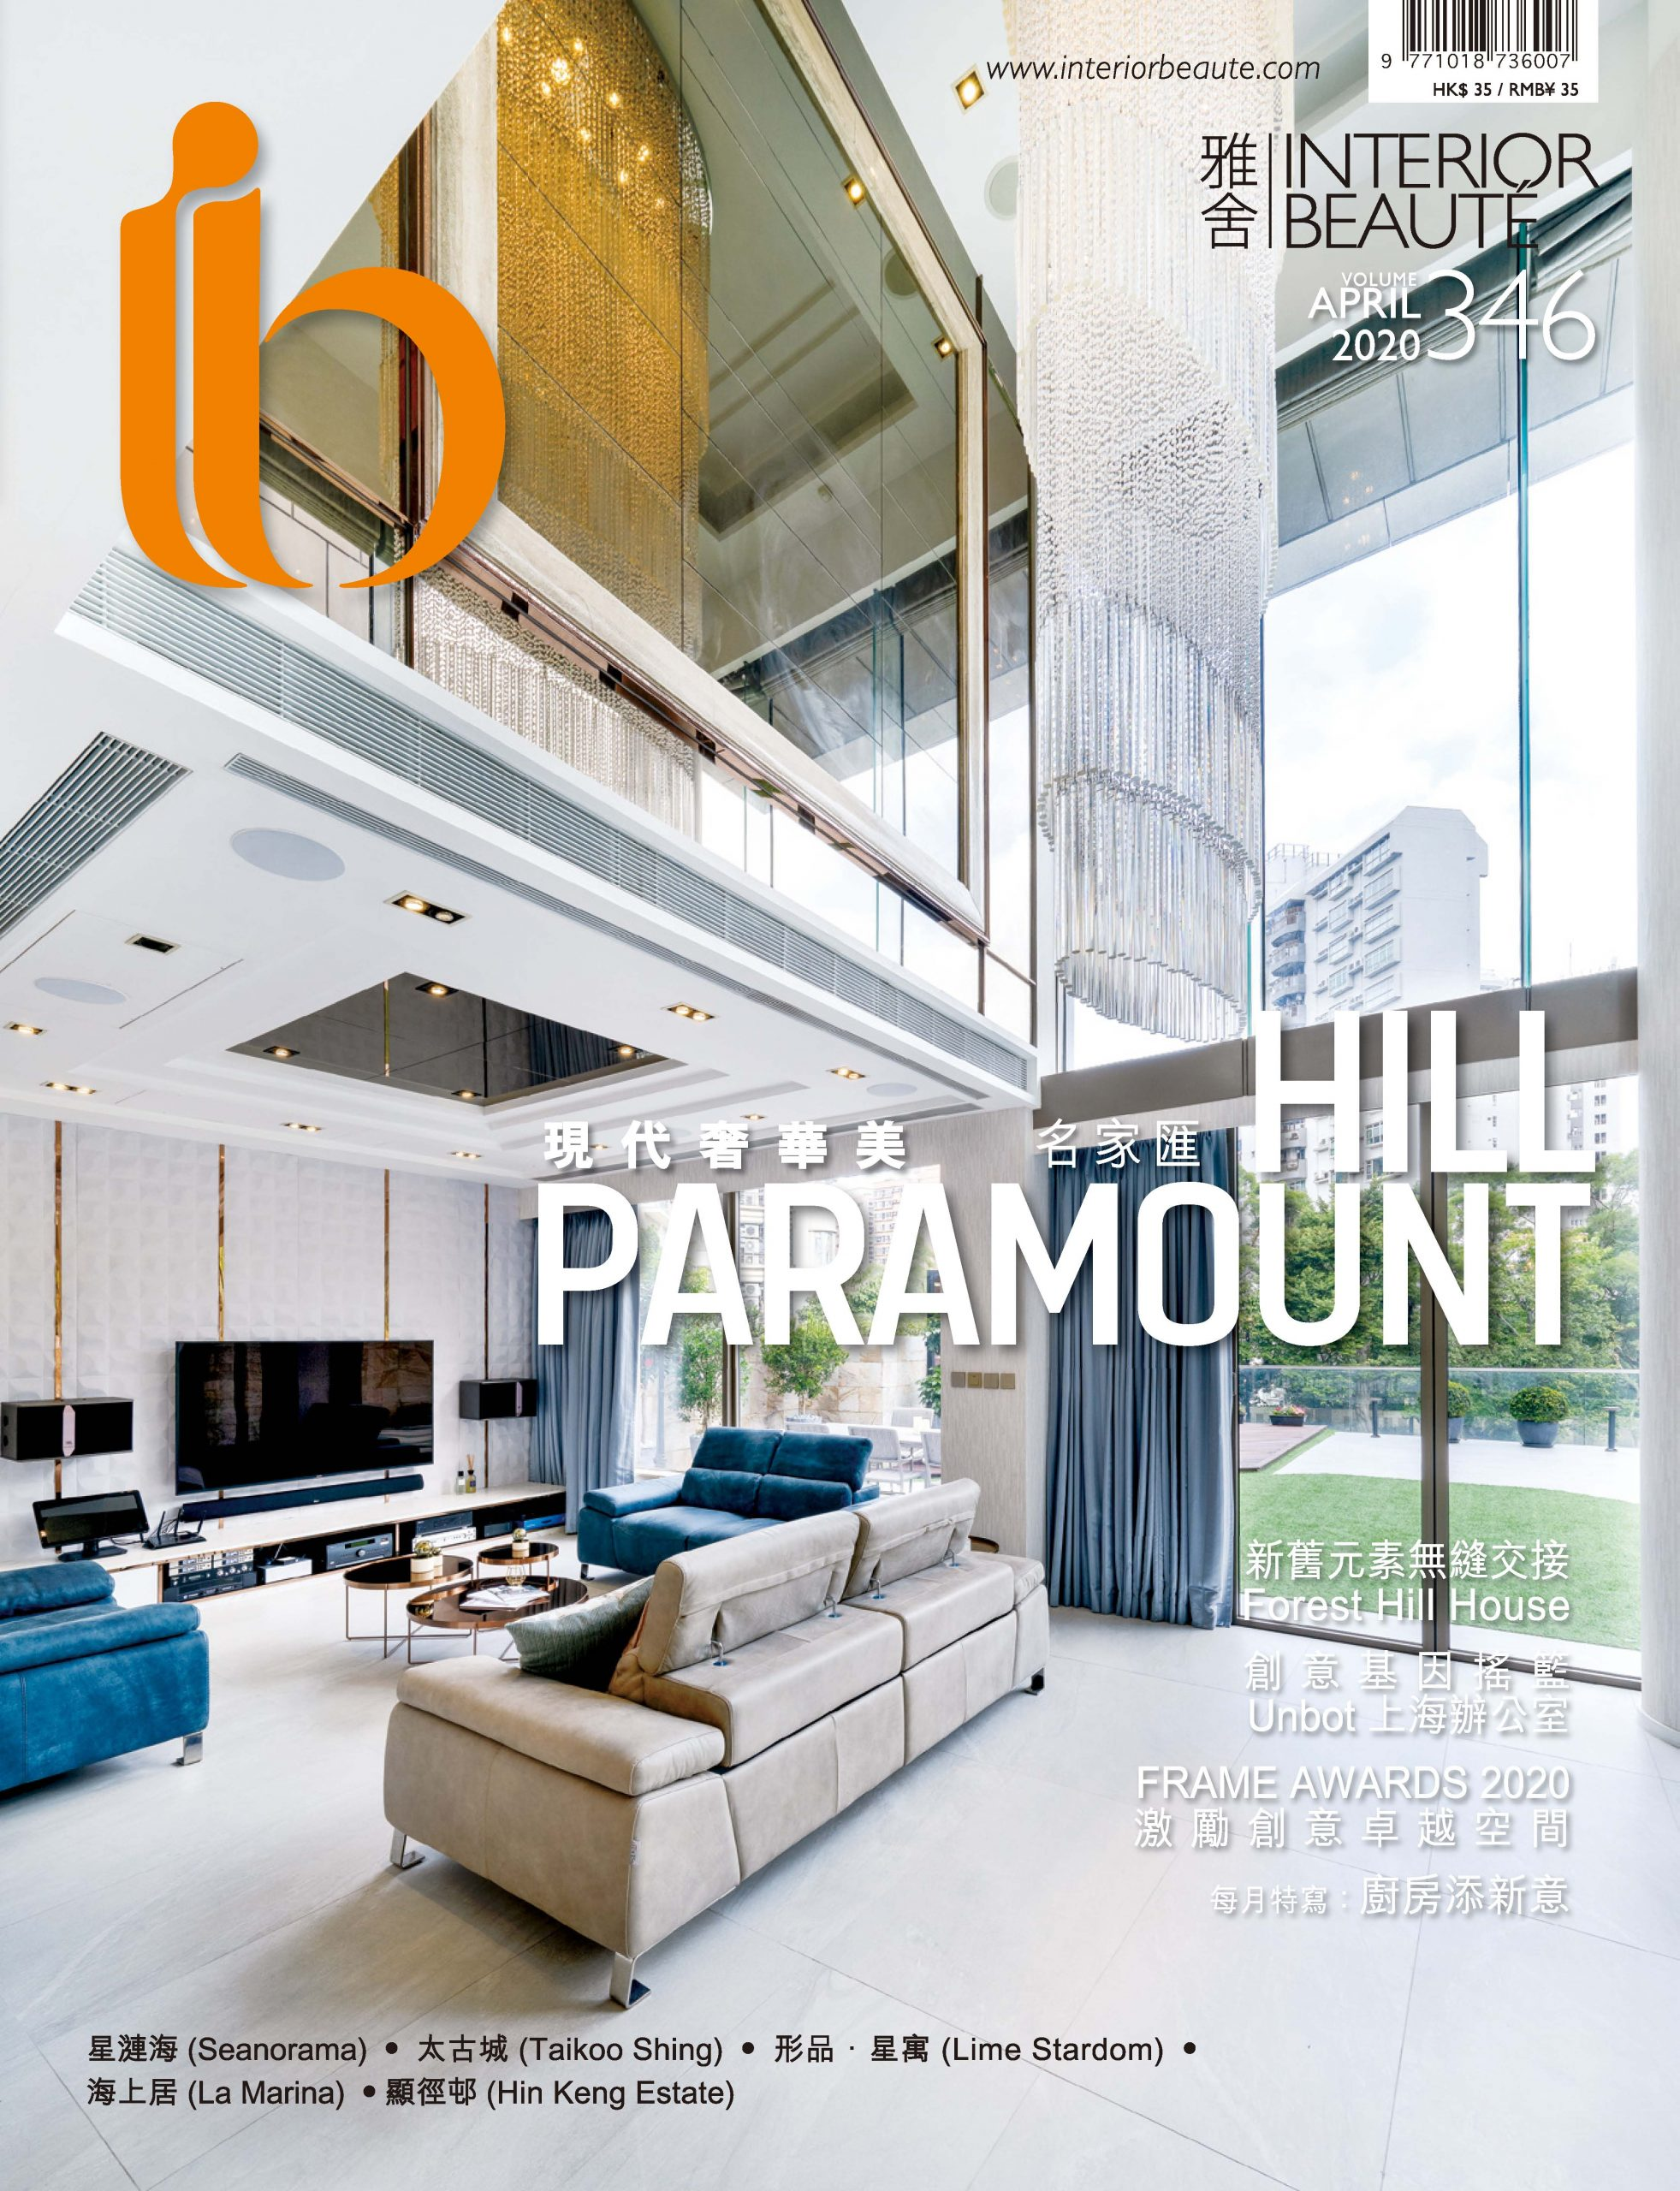 Interior Beaute TKS 04 April 2020 Issue Page 10